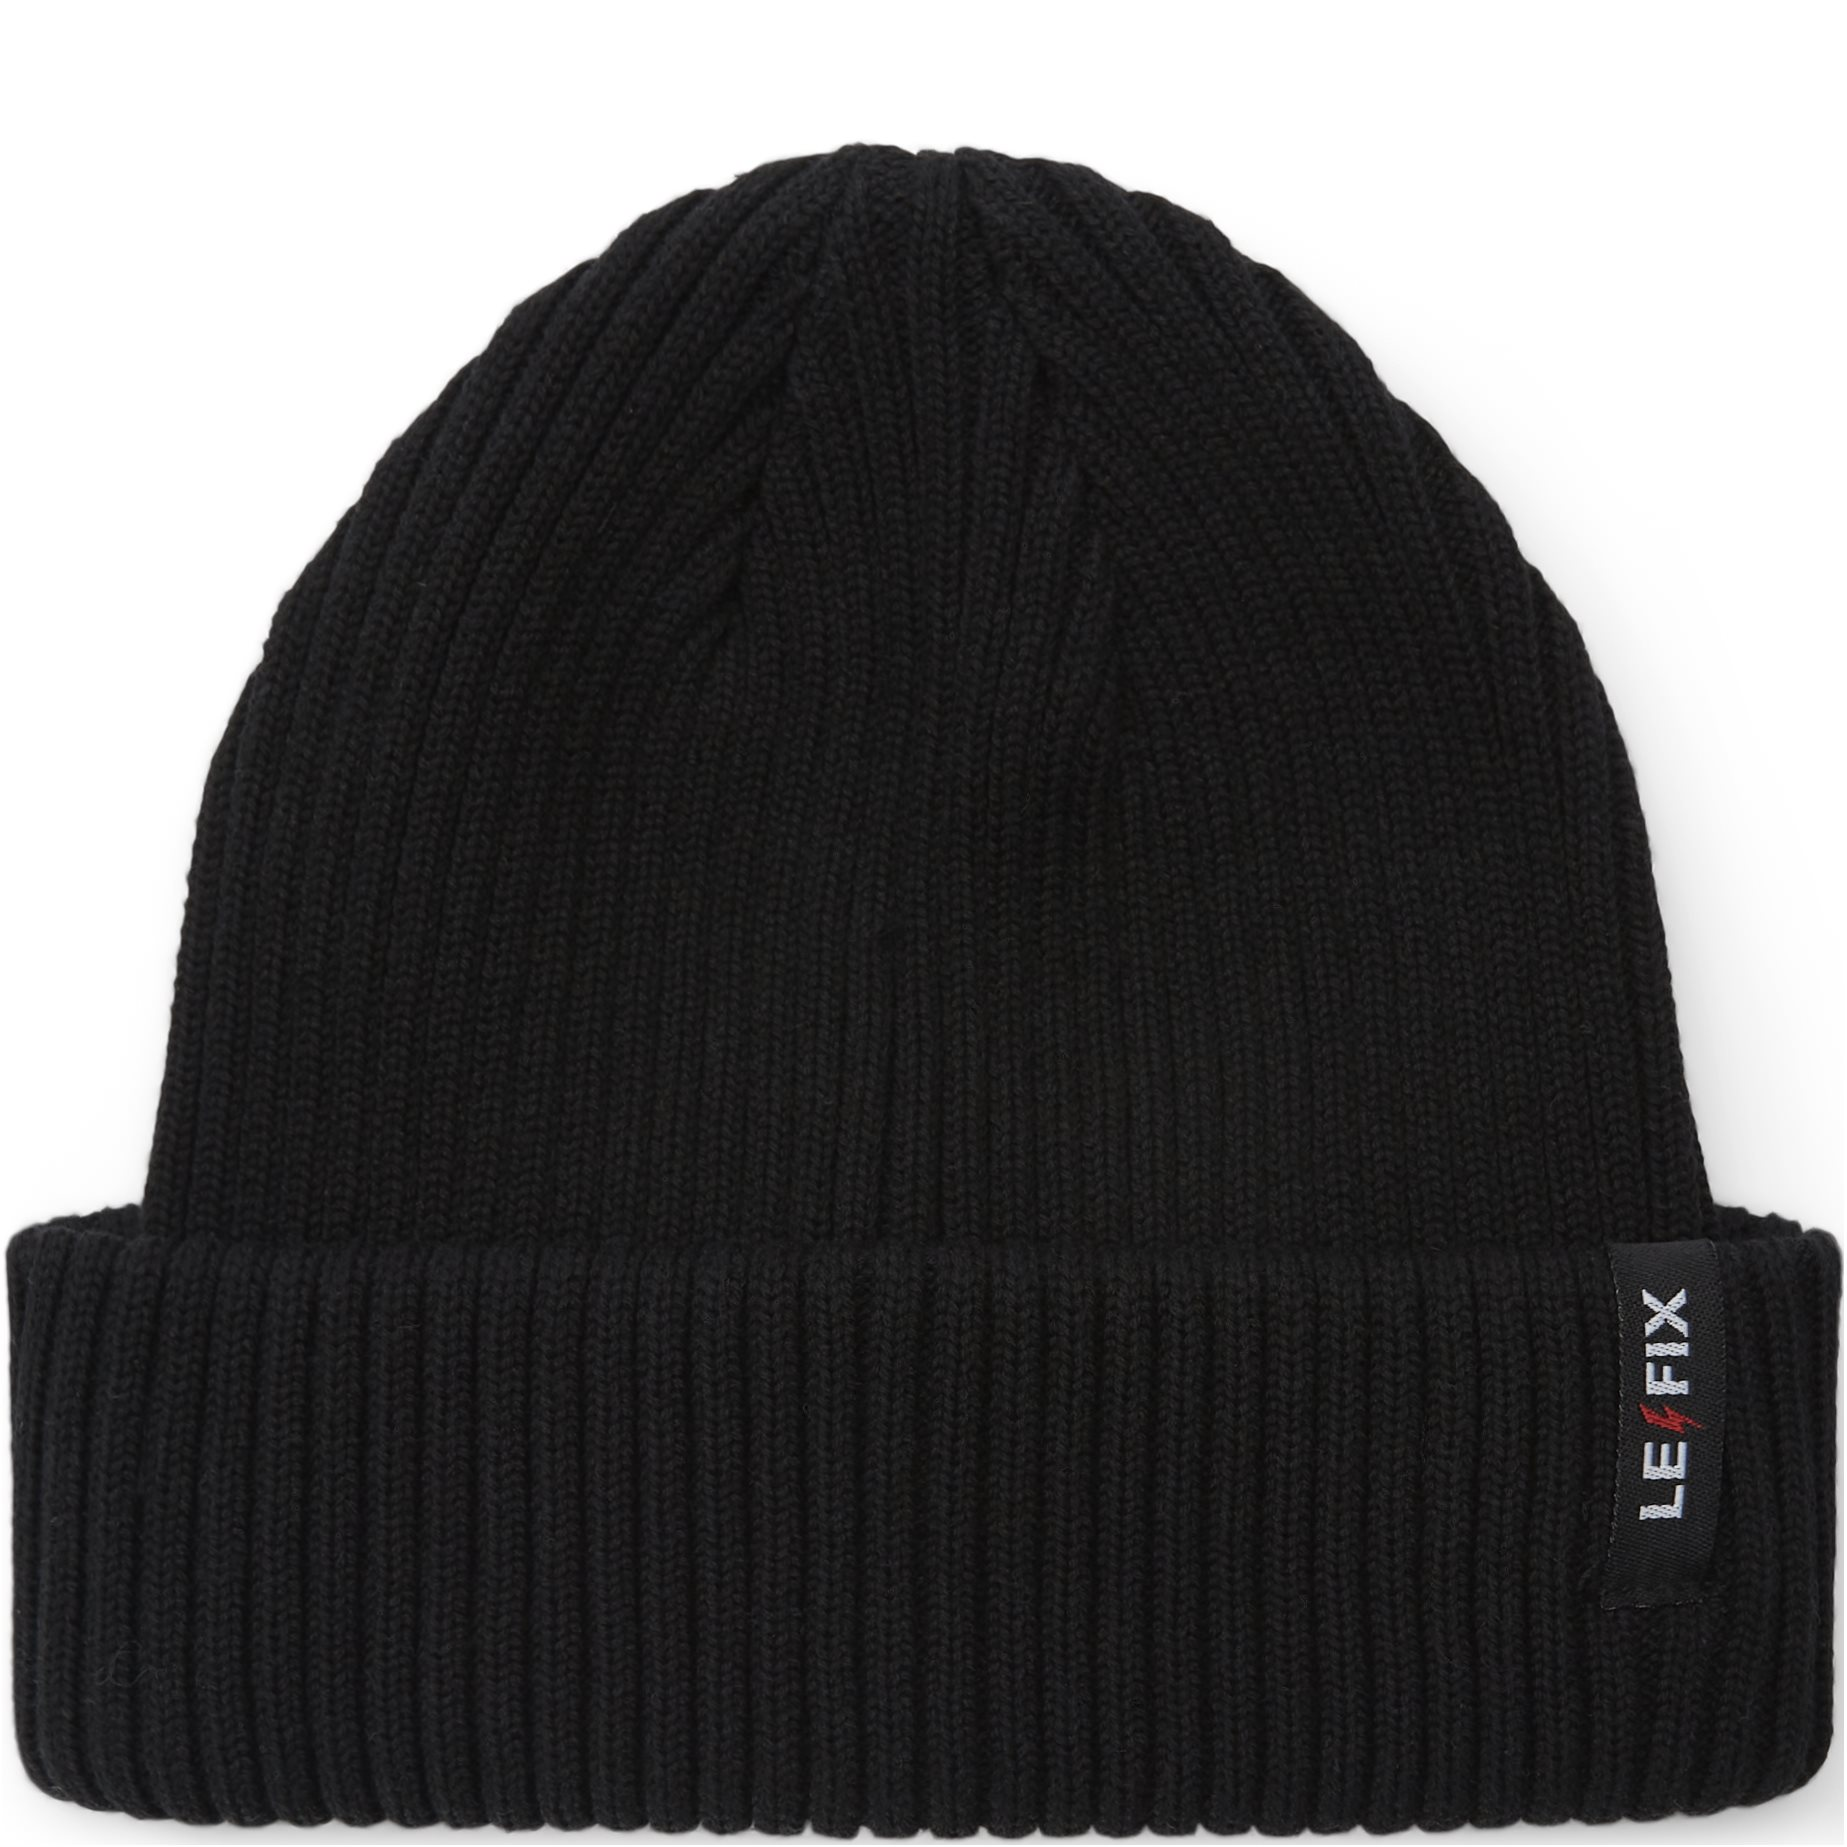 Cotton Sailor Beanie - Huer - Sort